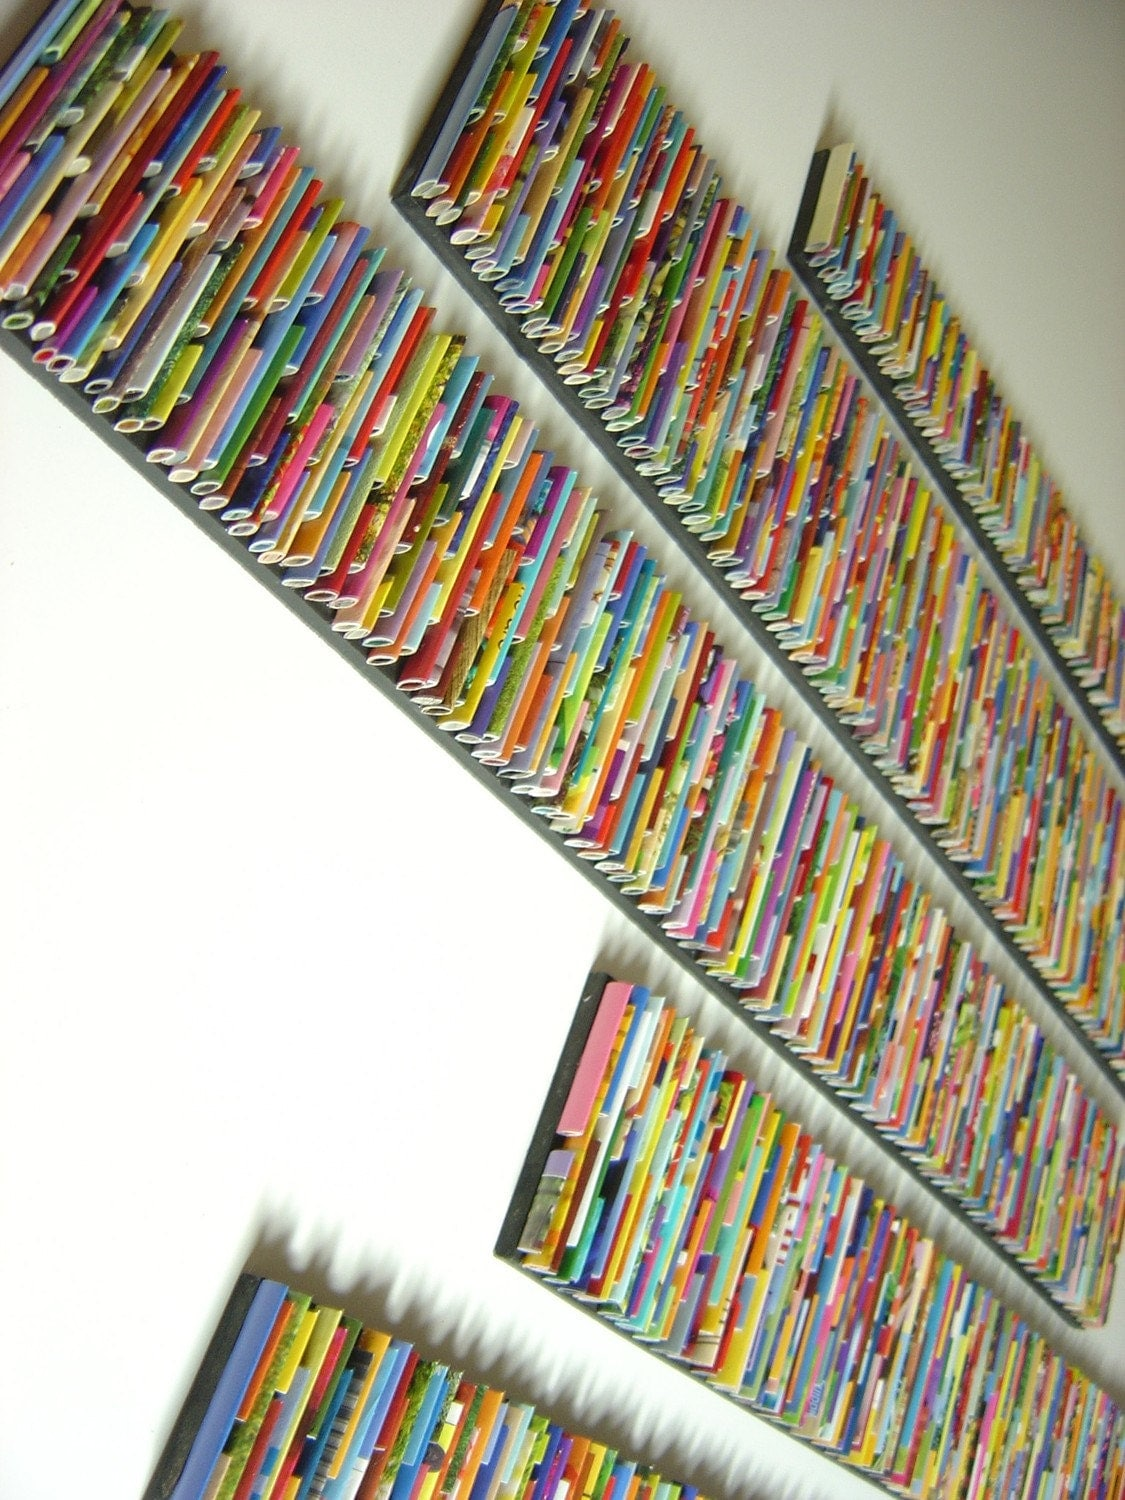 Barcode wall art made from recycled magazines colorful art - Magazine wall decor ...